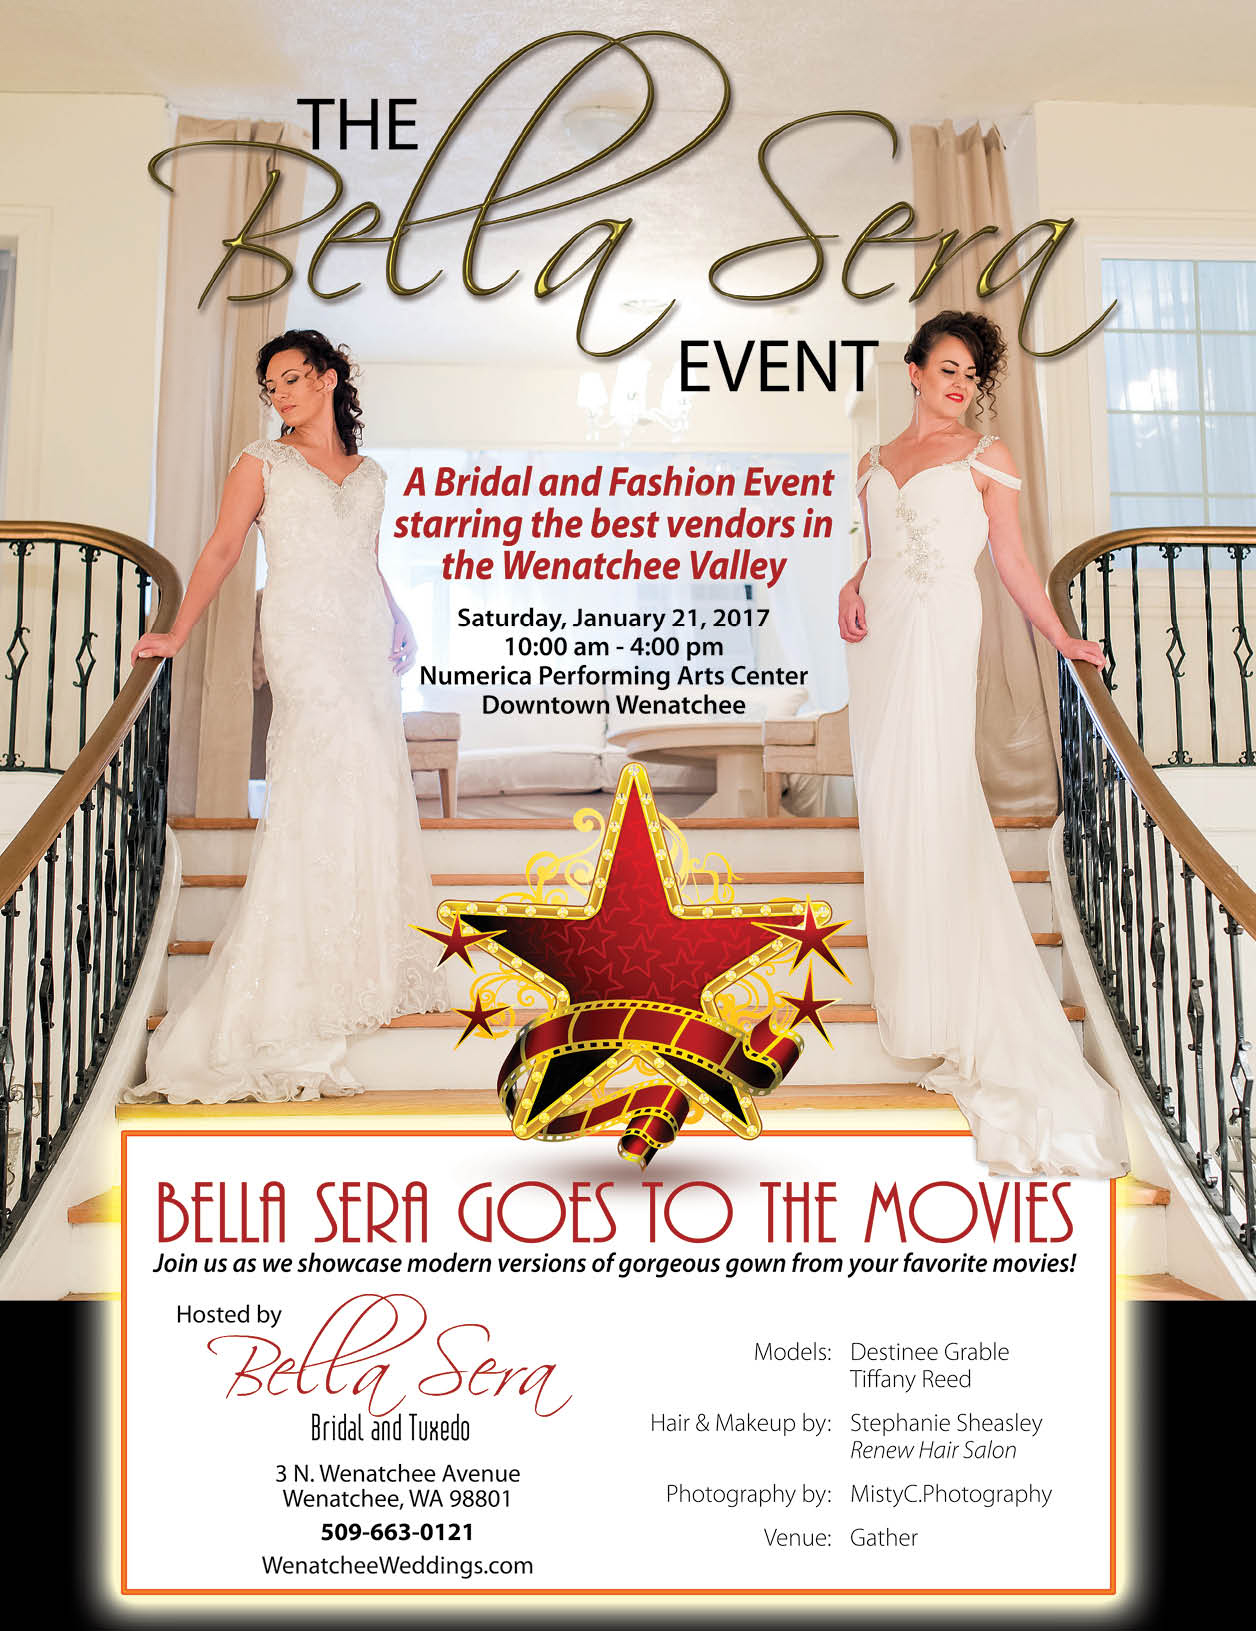 Bridal fairs vendor associations for The bella sera